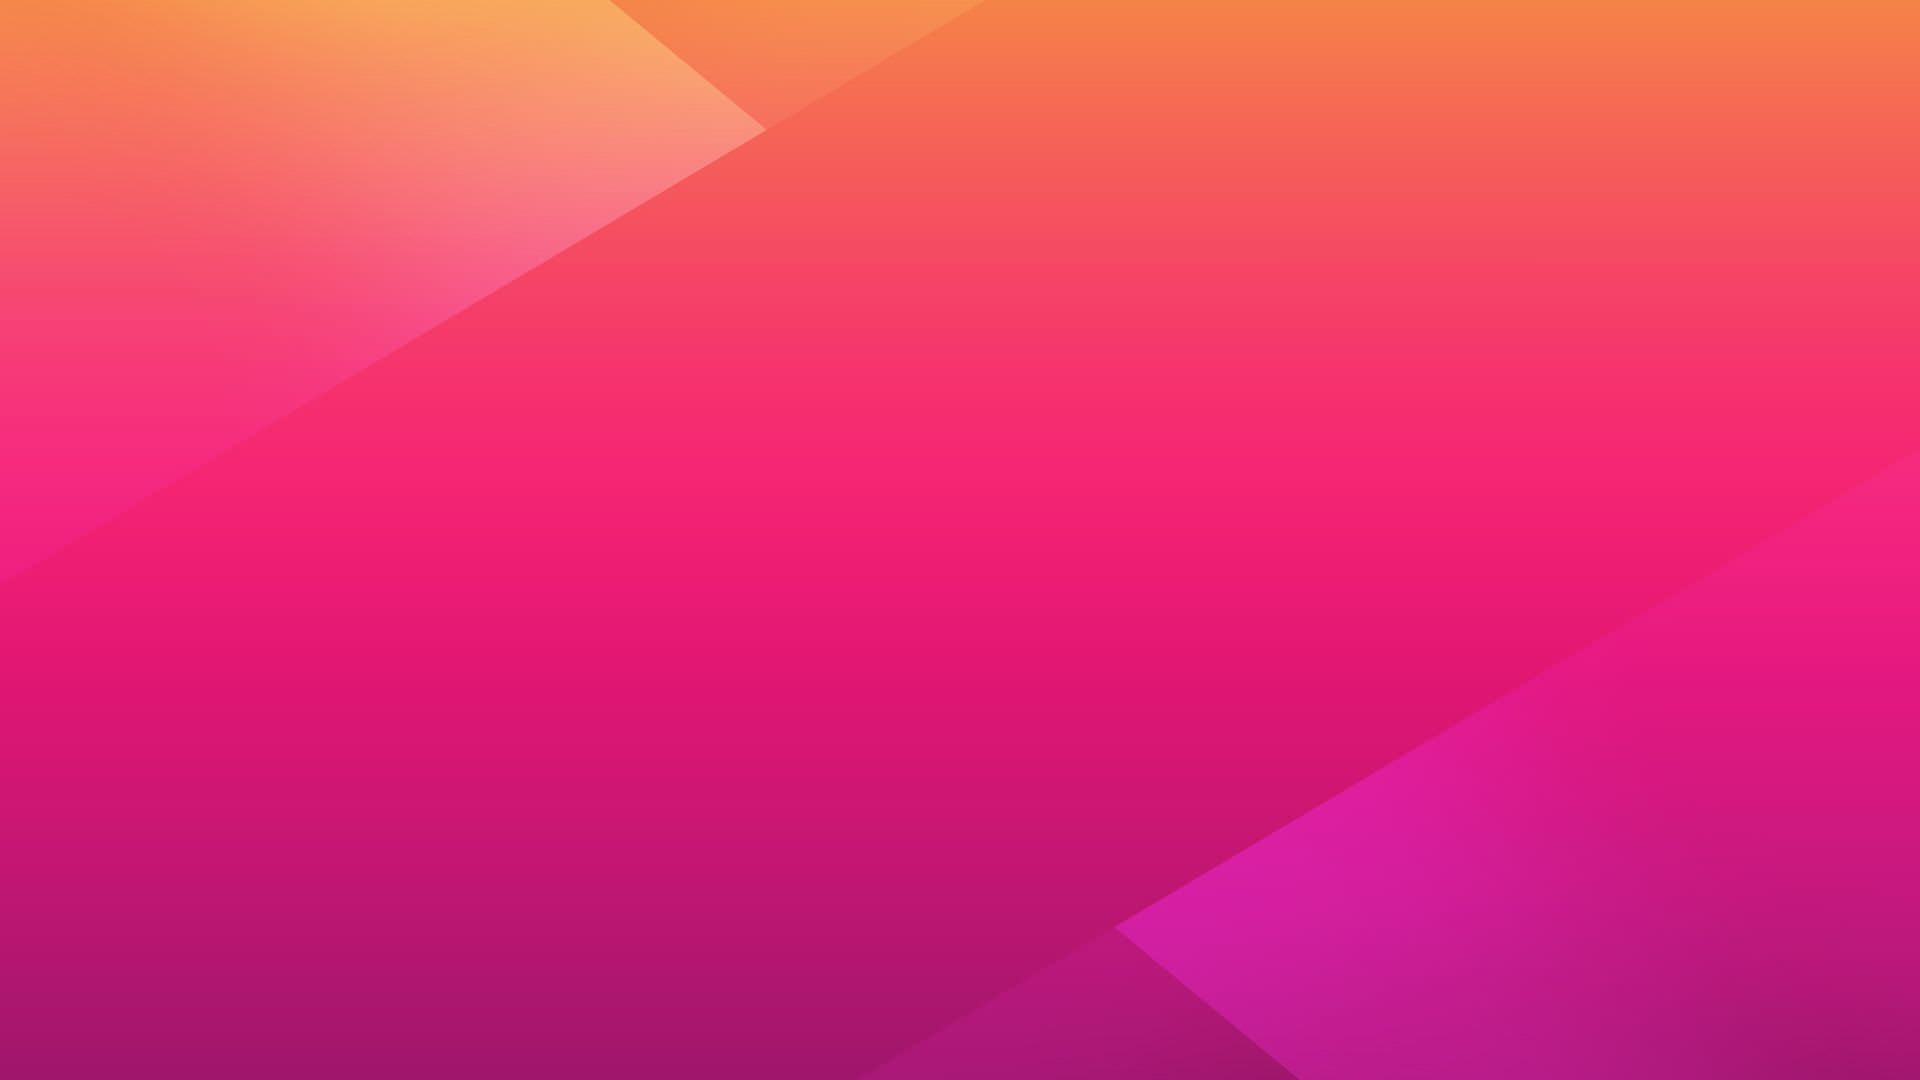 Awesome Pink Gradient Wallpaper